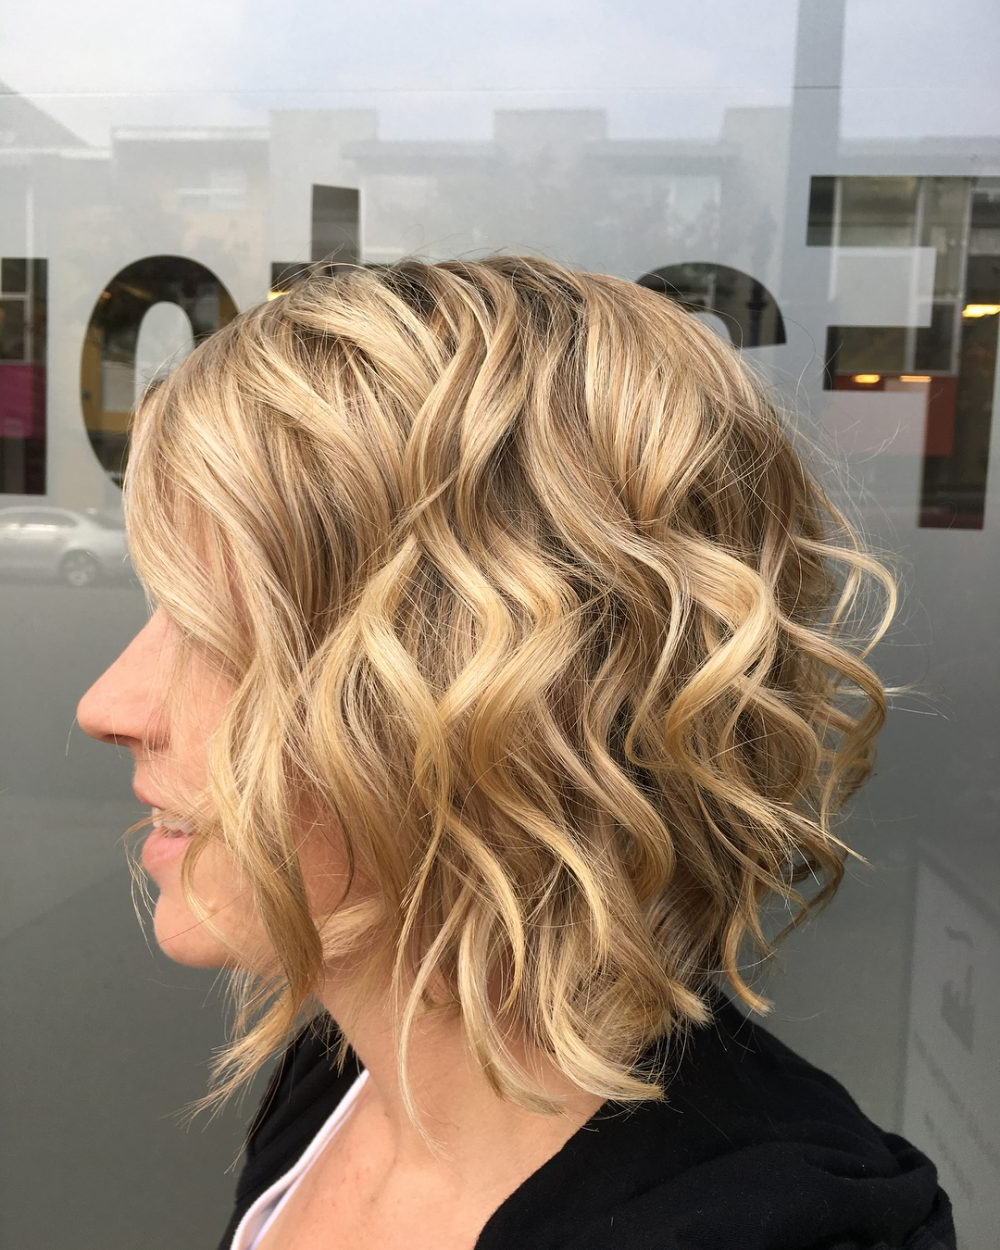 Most Up To Date Layered Wavy Lob Hairstyles Regarding 43 Greatest Wavy Bob Hairstyles – Short, Medium And Long In (View 12 of 20)